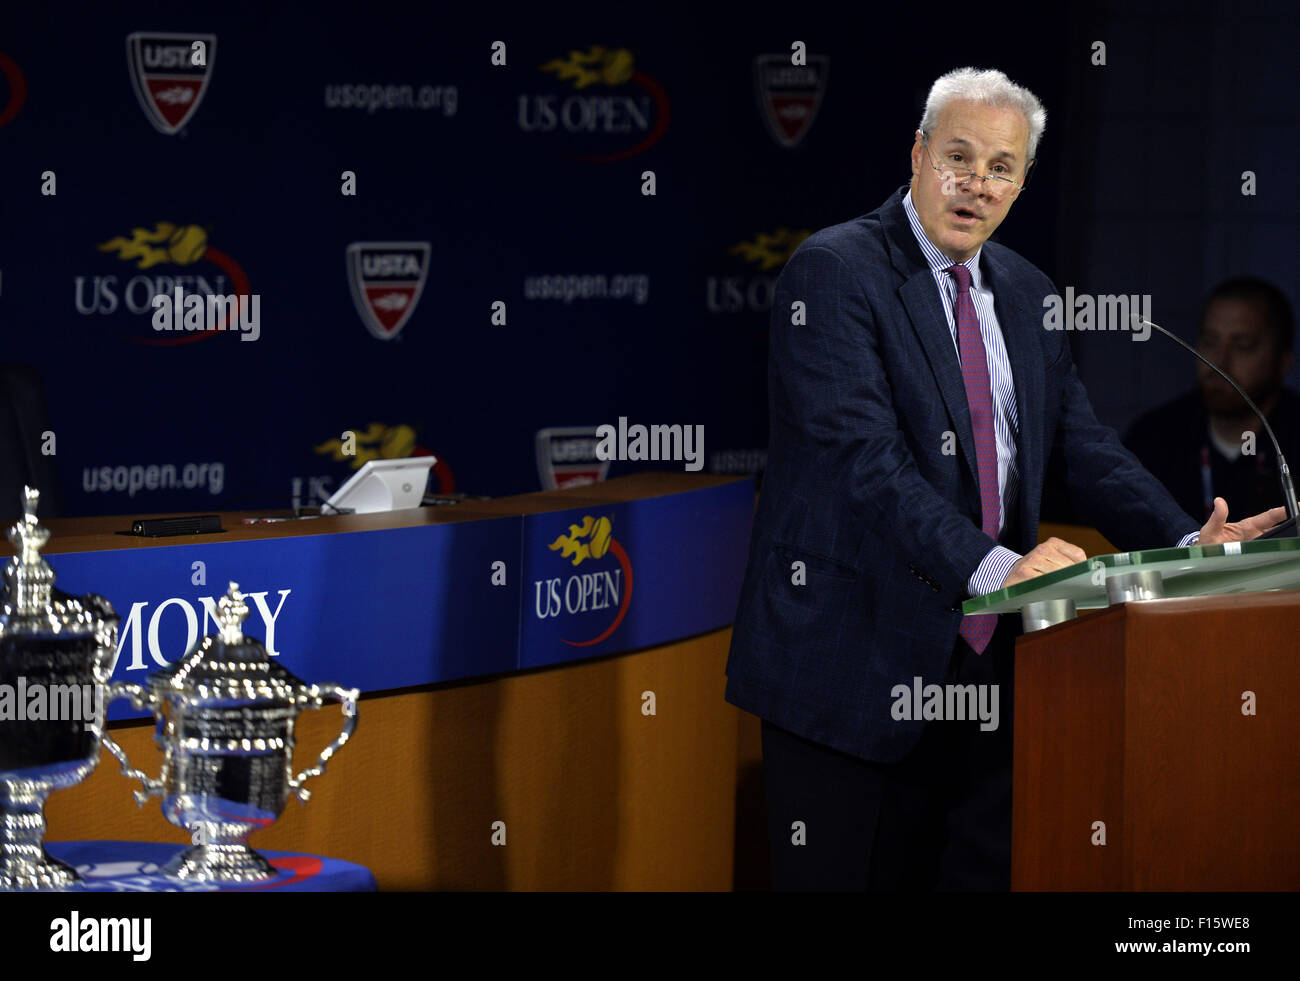 New York, USA. 27th Aug, 2015. US Open Tournament Director David Brewer attends the U.S. Open Tennis draw ceremony - Stock Image